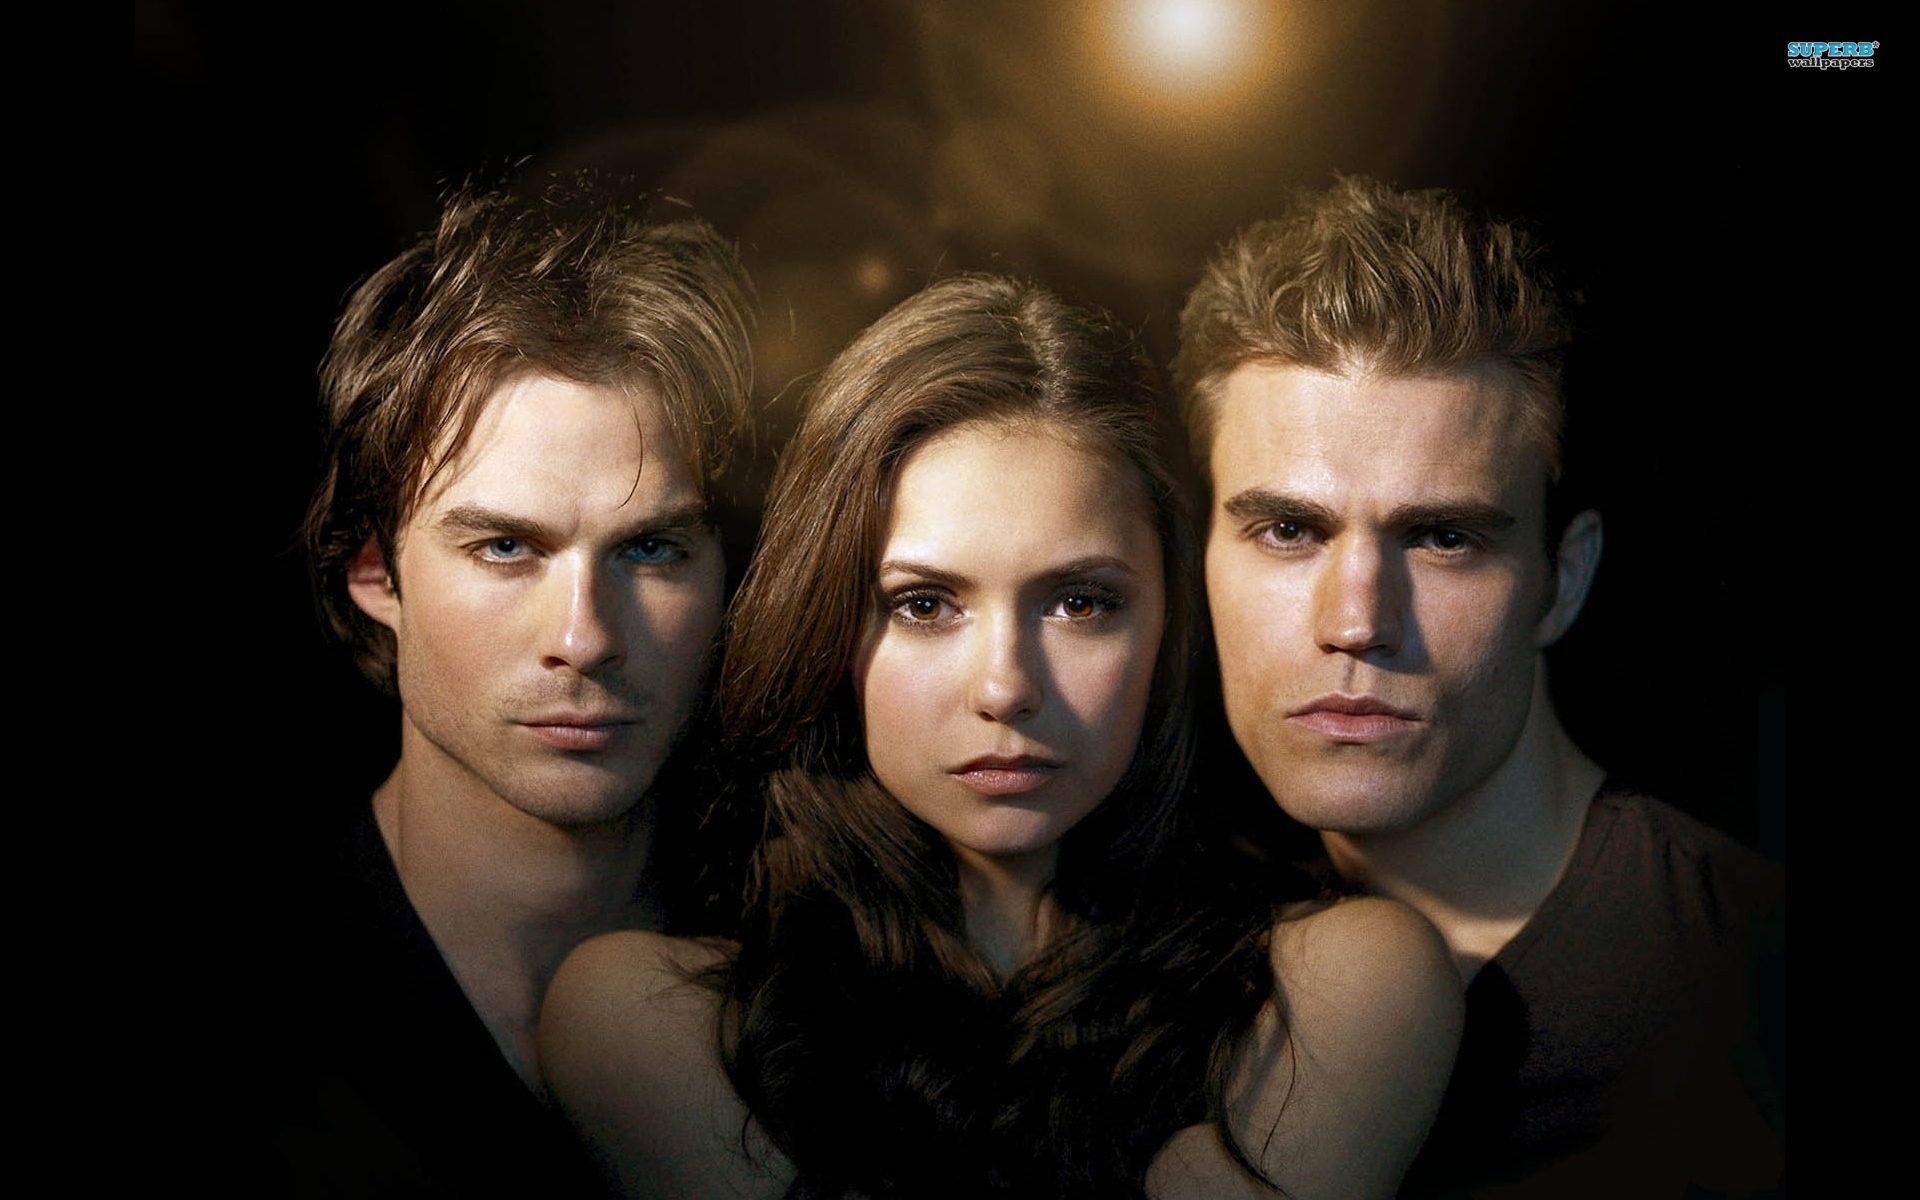 Vampire Diaries Wallpaper - QiGe87.com